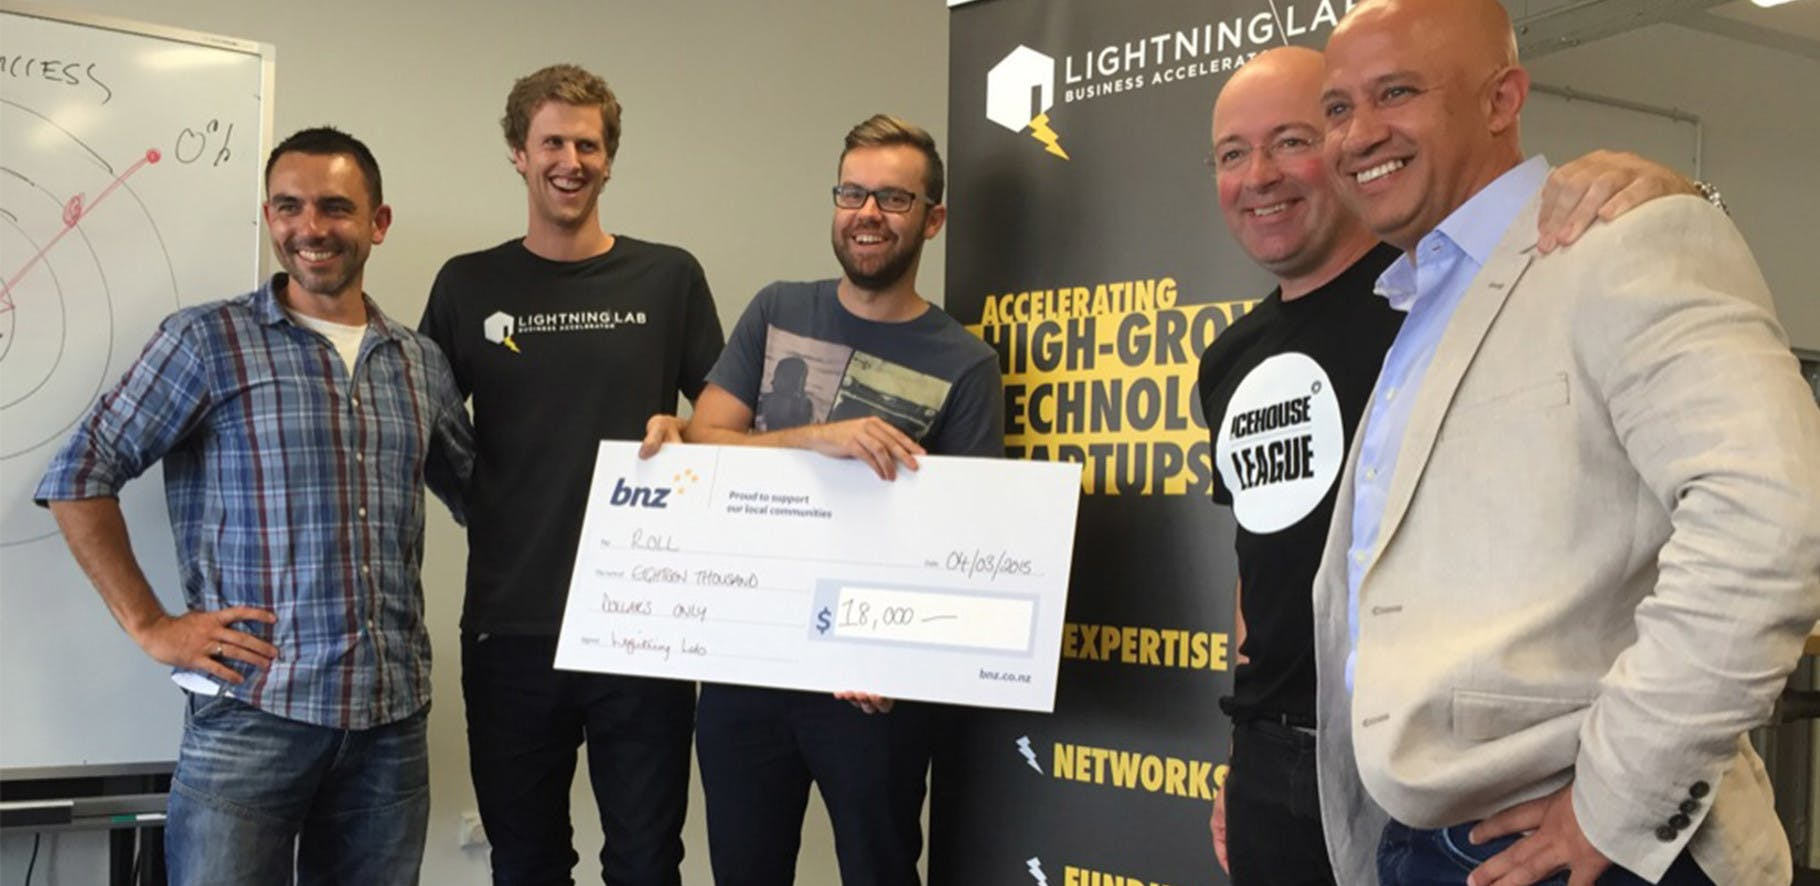 The team at Roll are being presented with a cheque from Lightning Lab for being chosen as one of the 9 most promising tech startups in New Zealand